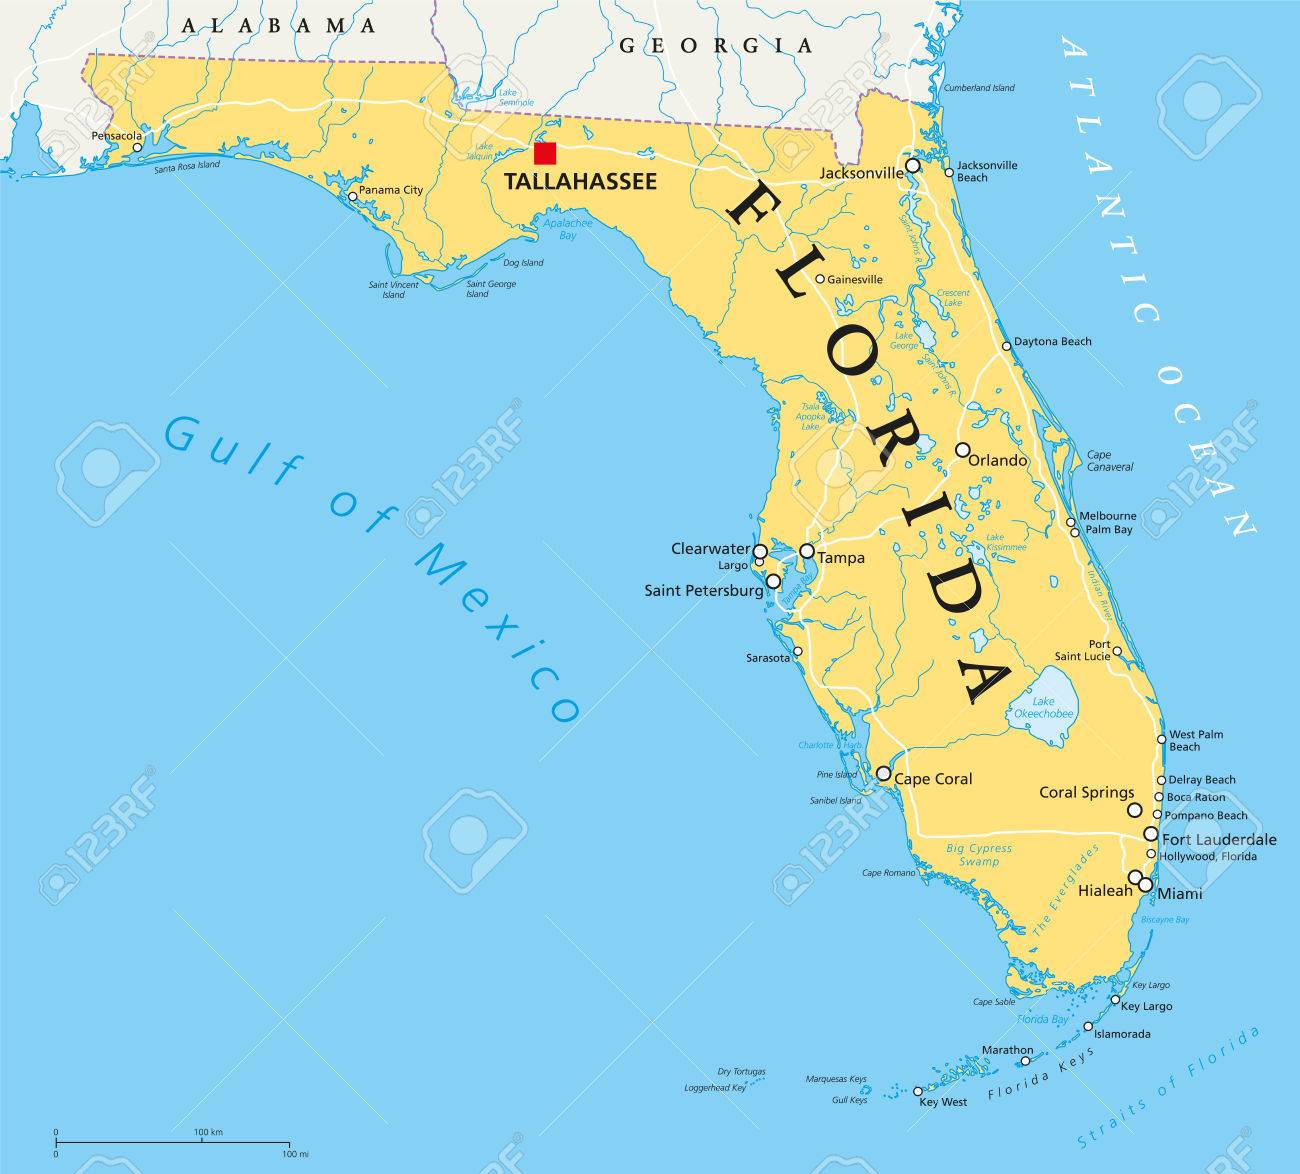 Florida Political Map With Capital Tallahassee, Borders, Important - Tallahassee On The Map Of Florida